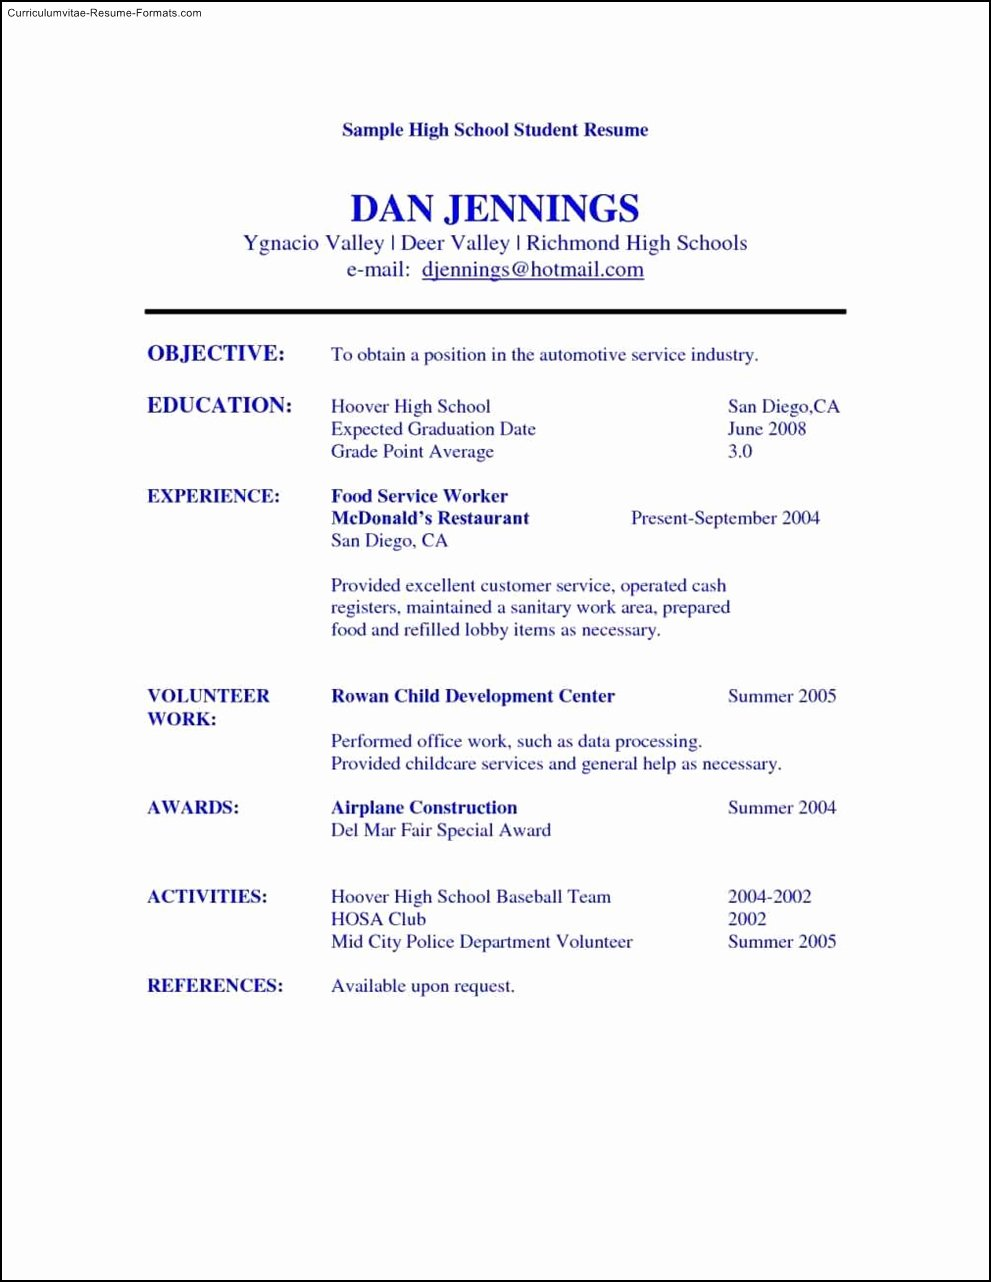 High School Student Resume Templates Free Samples